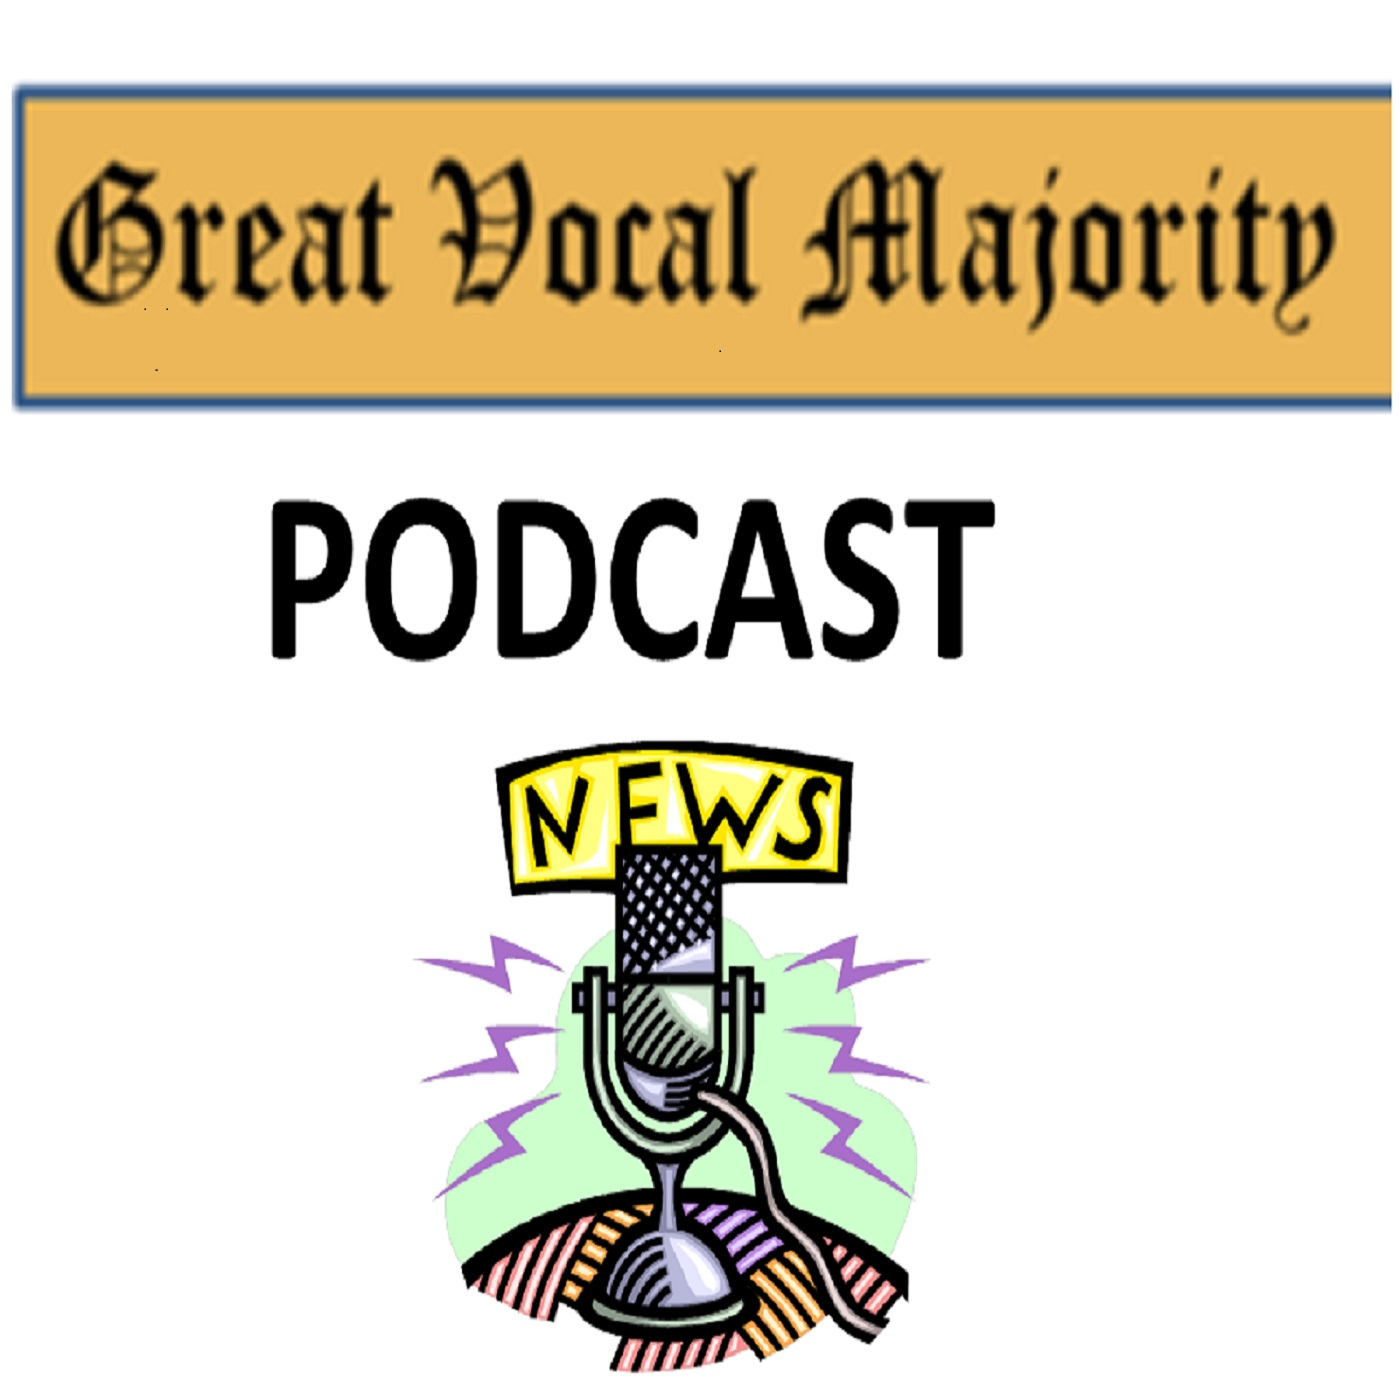 Artwork for Great Vocal Majority Videocast:  It's a CULT!